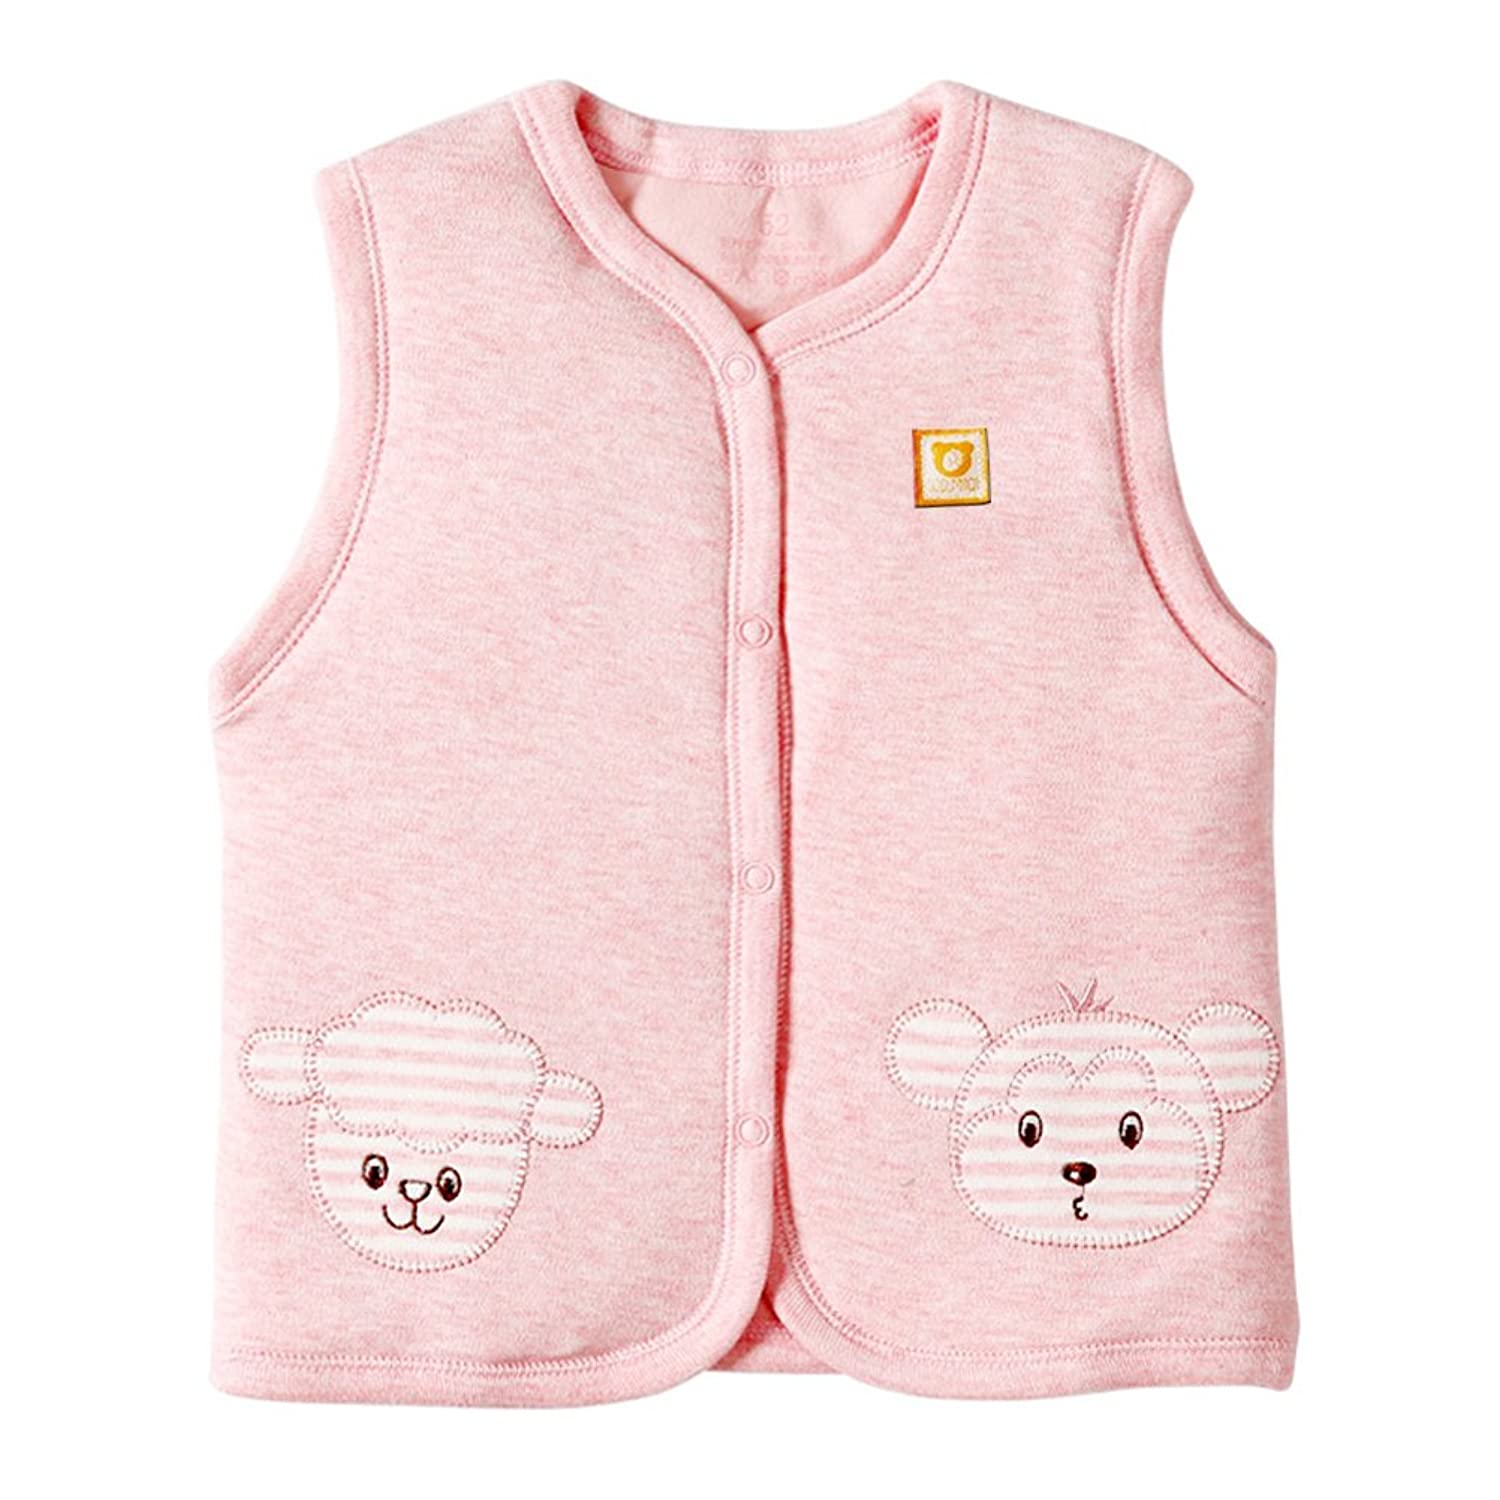 97acd8b51 Baby Girl s Outerwear Vests